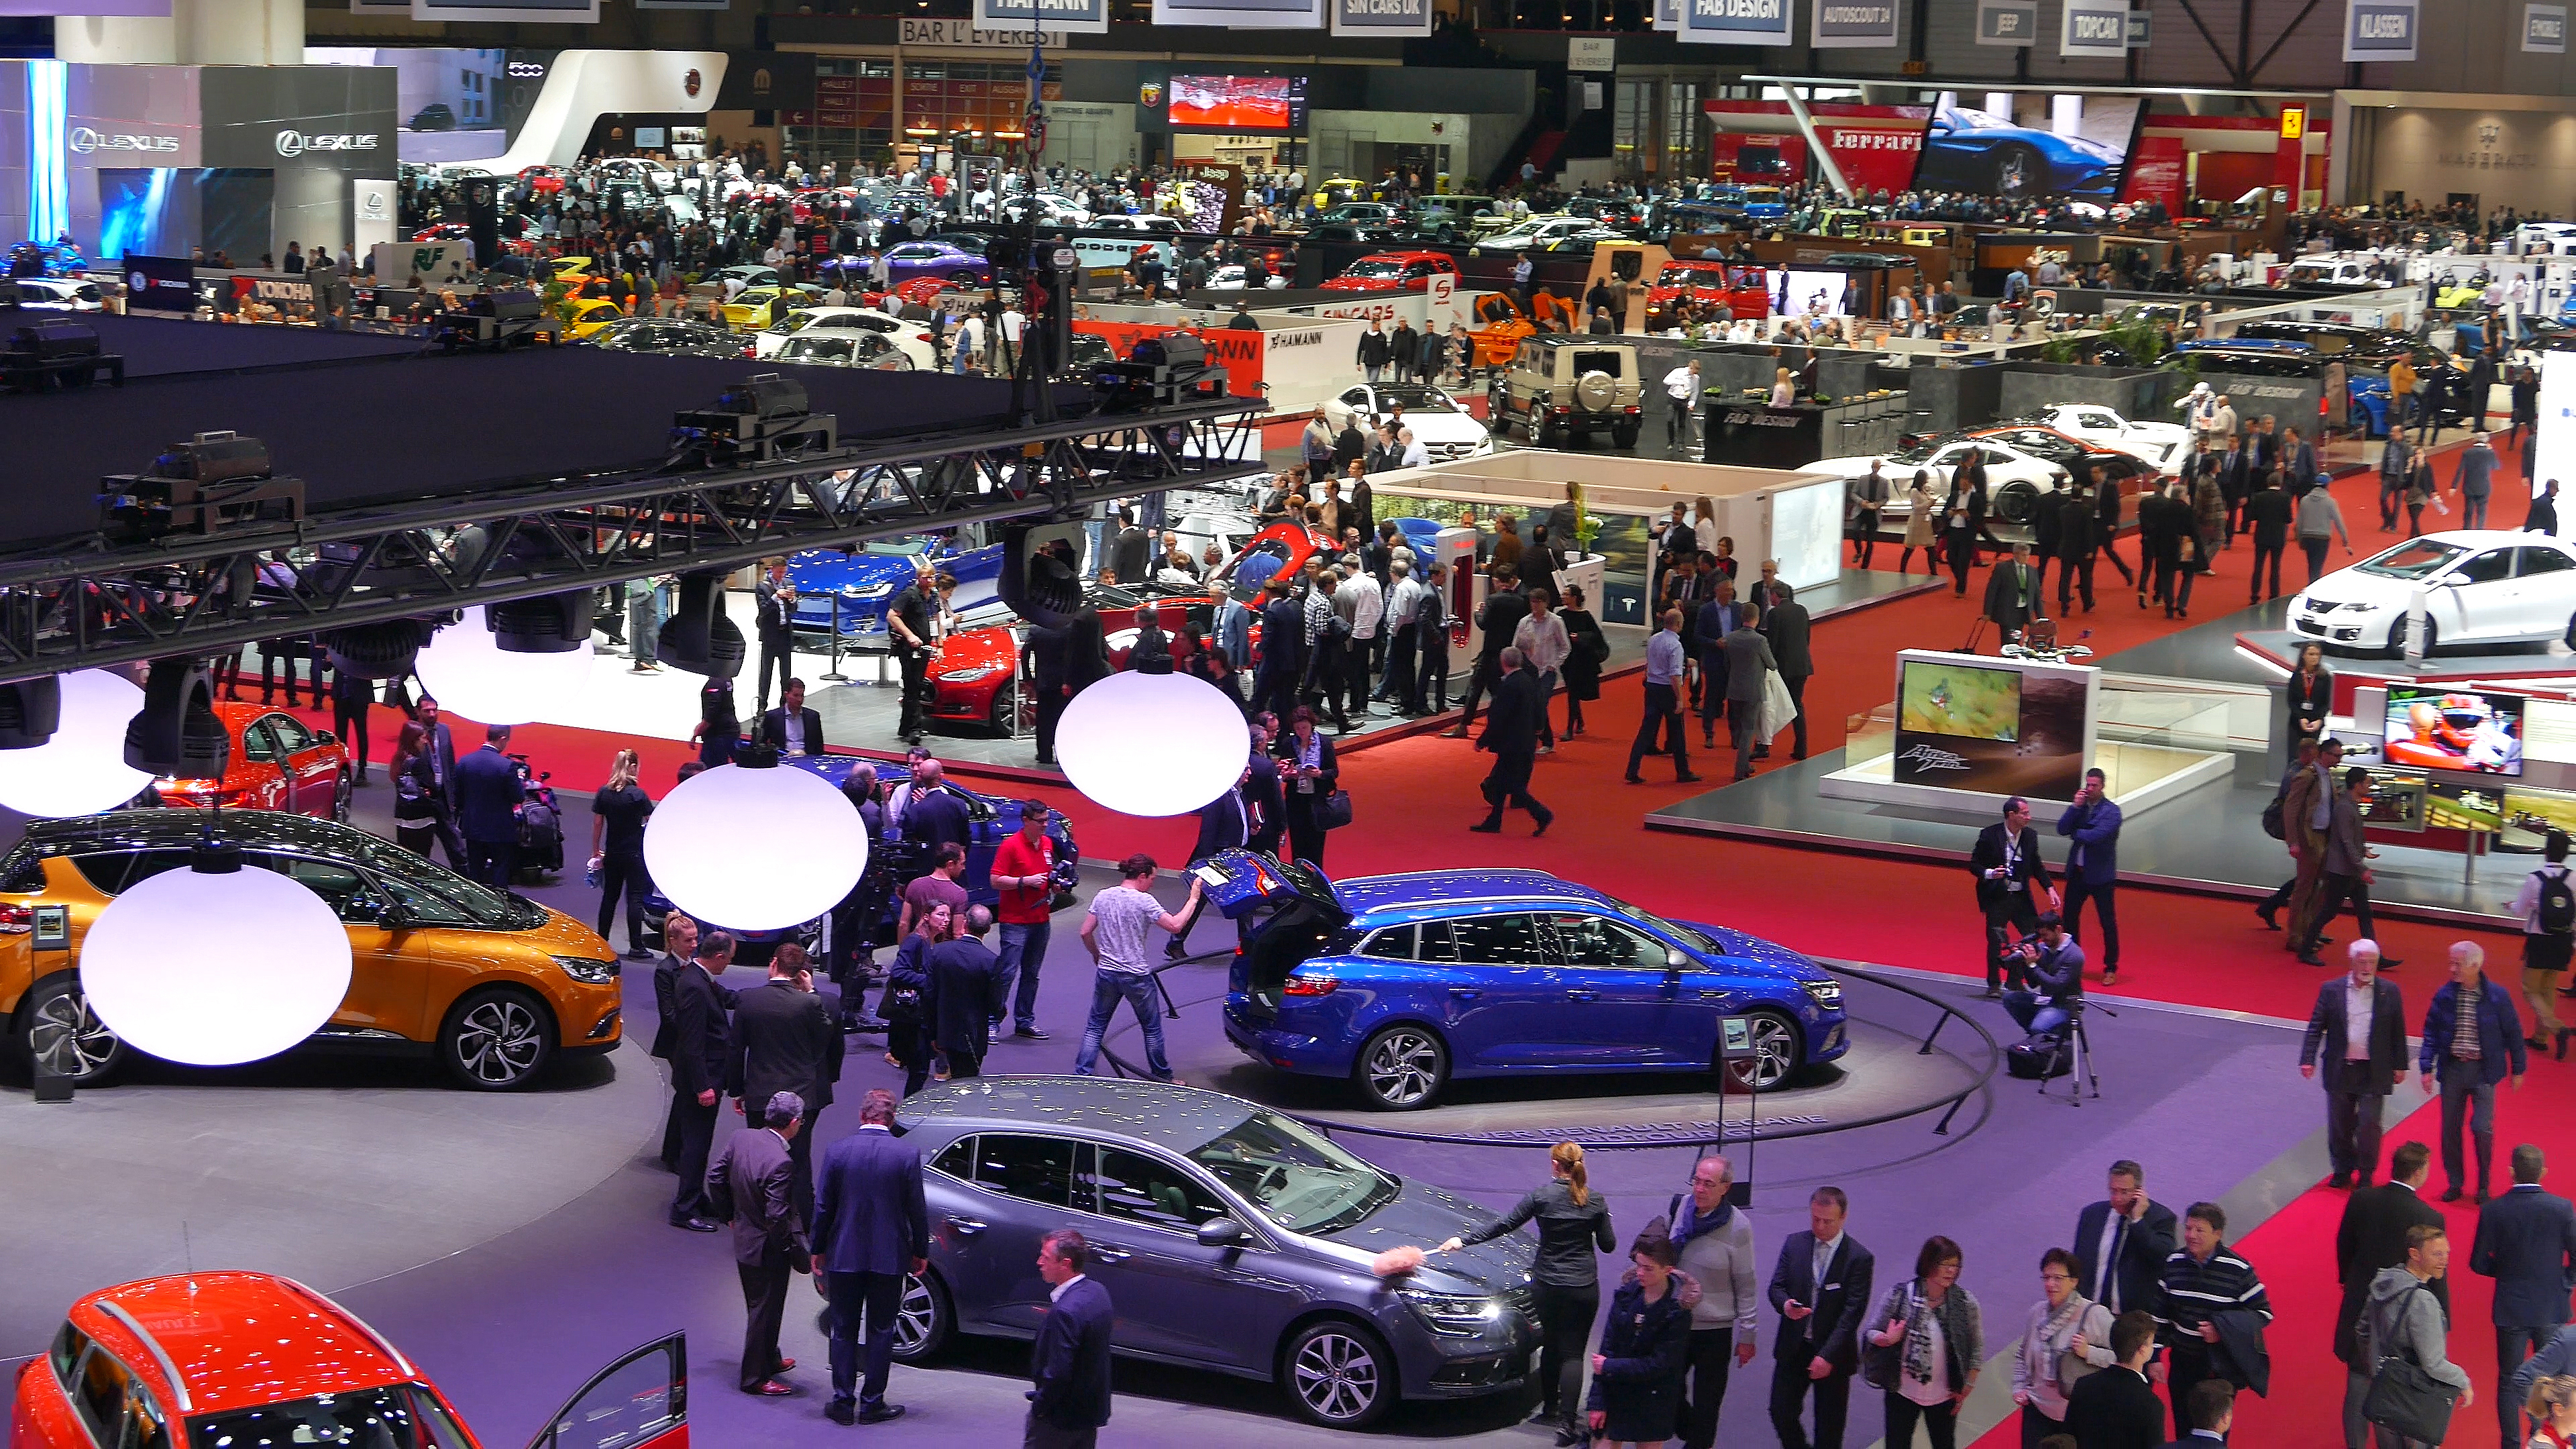 Salon automobile genève 2016 photo